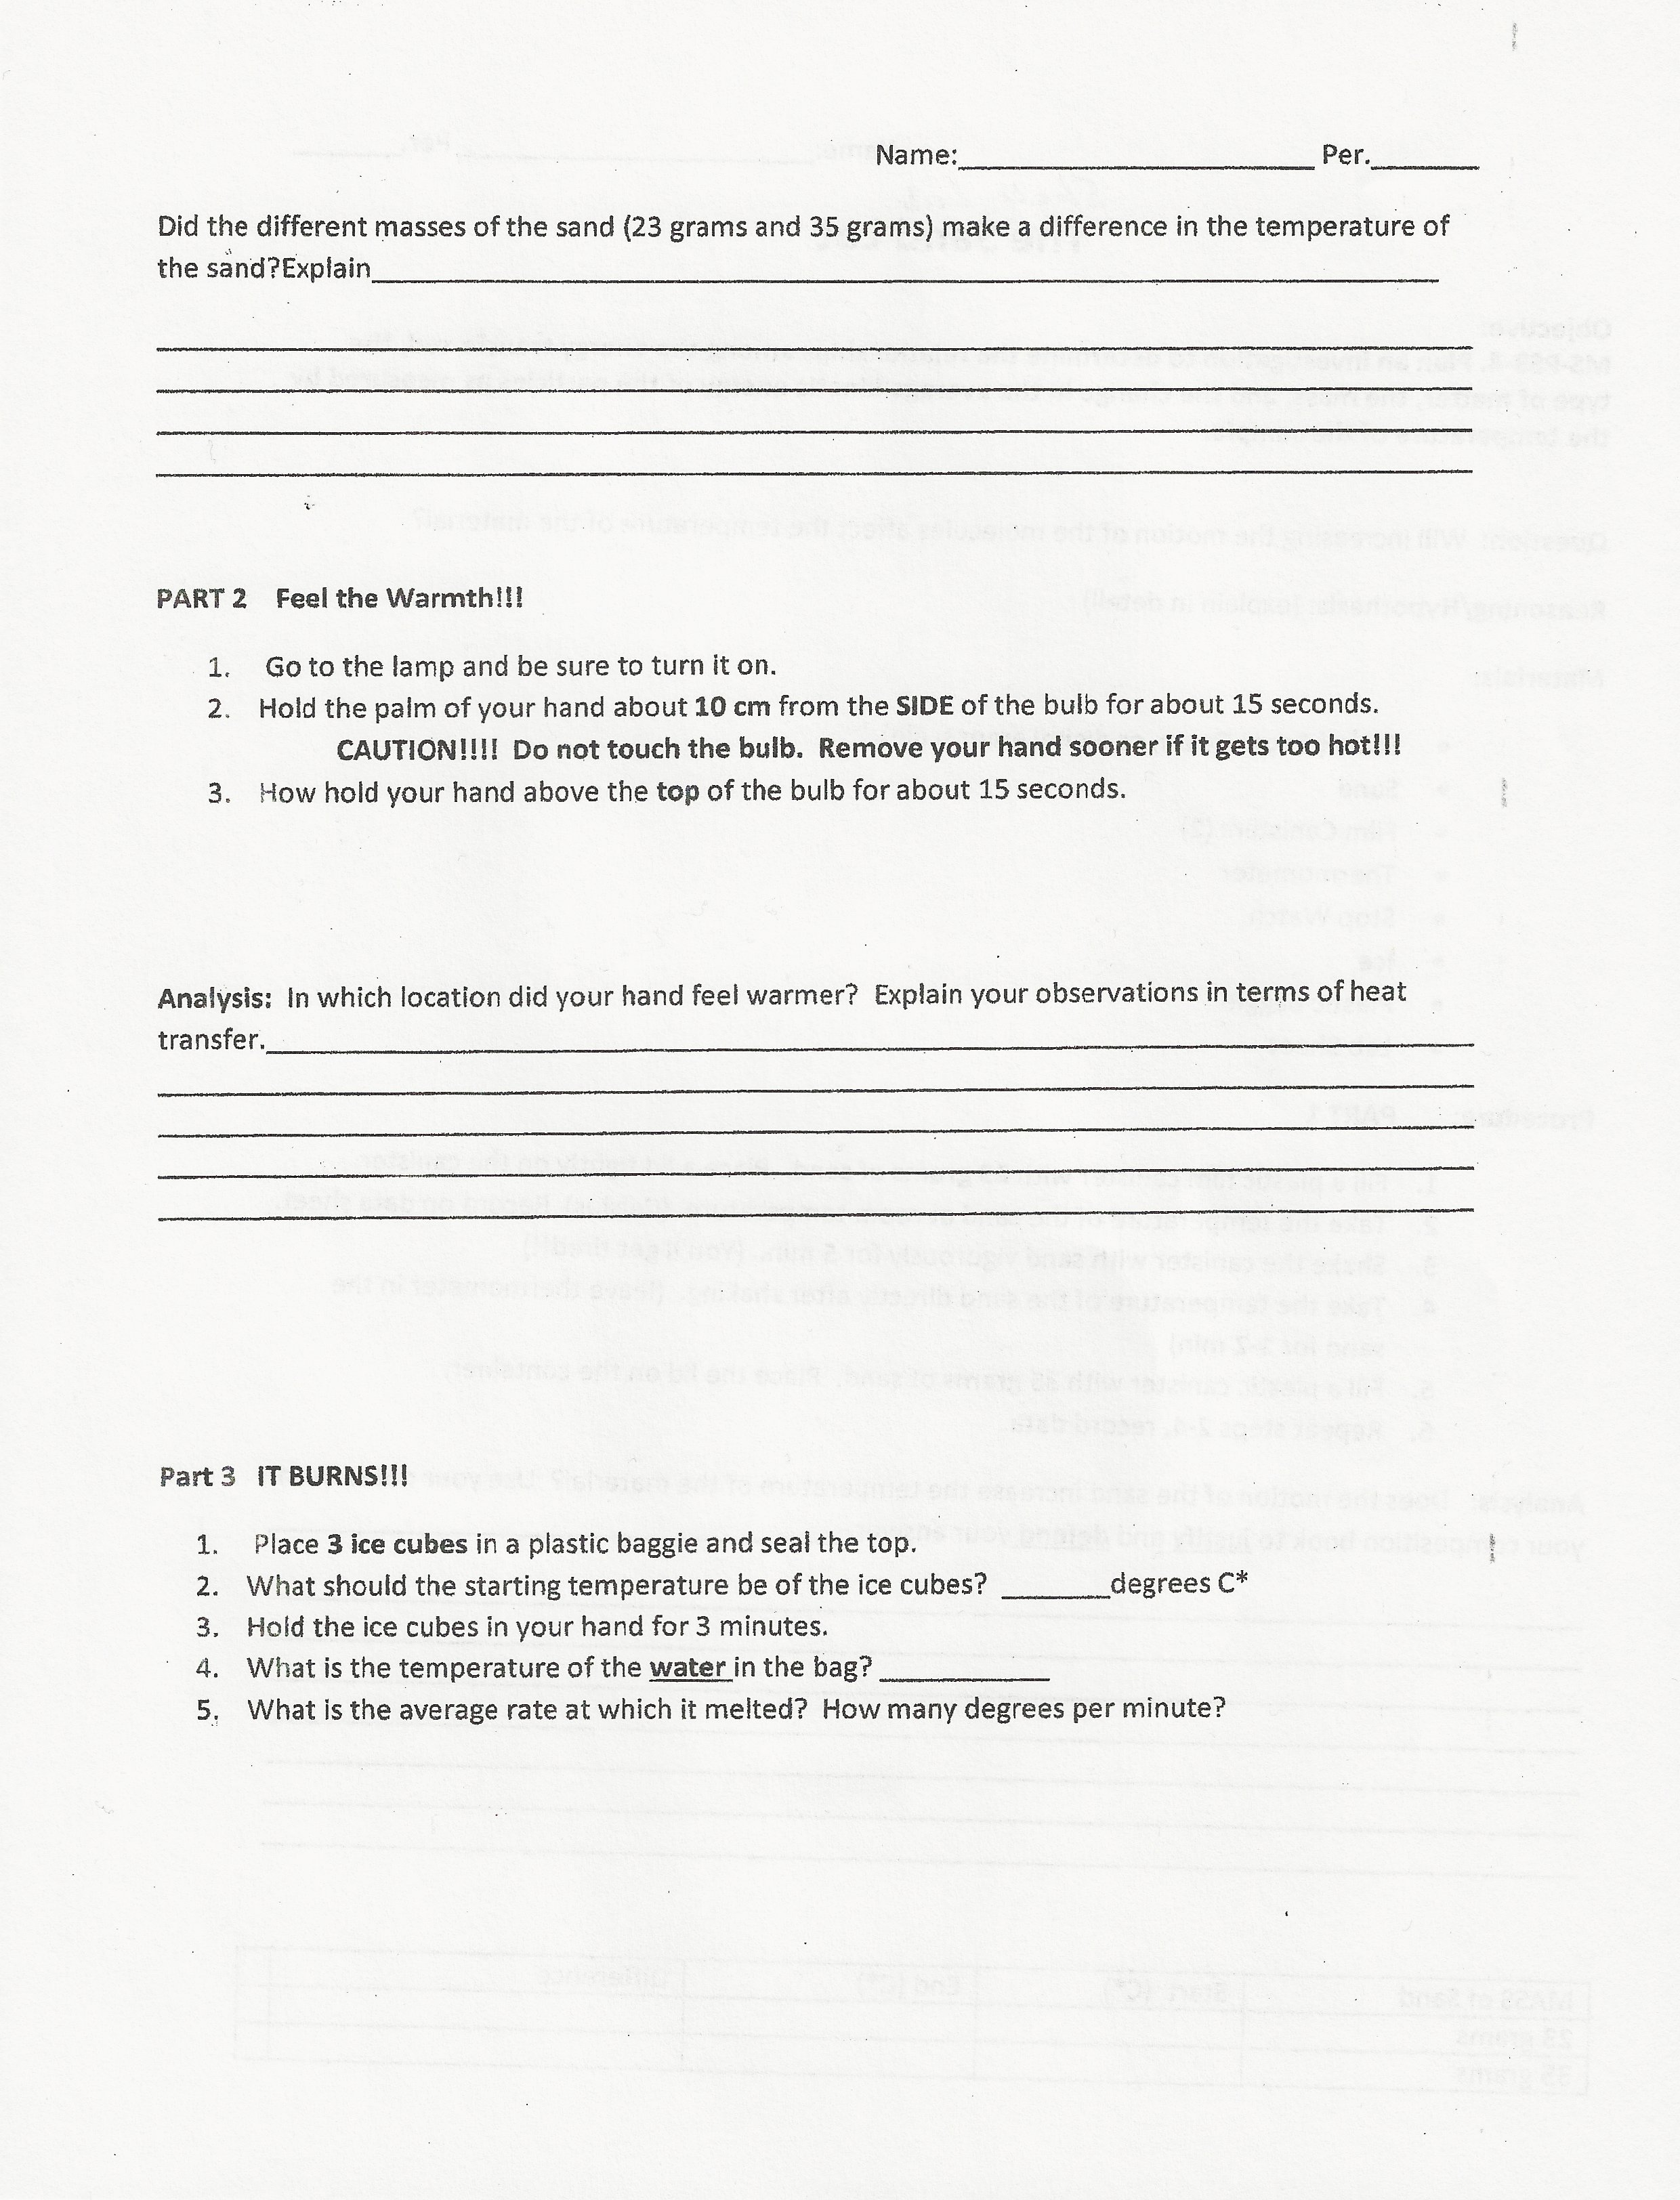 Free Worksheet Bill Nye The Science Guy Energy Worksheet Phinixi – Bill Nye the Science Guy Worksheets